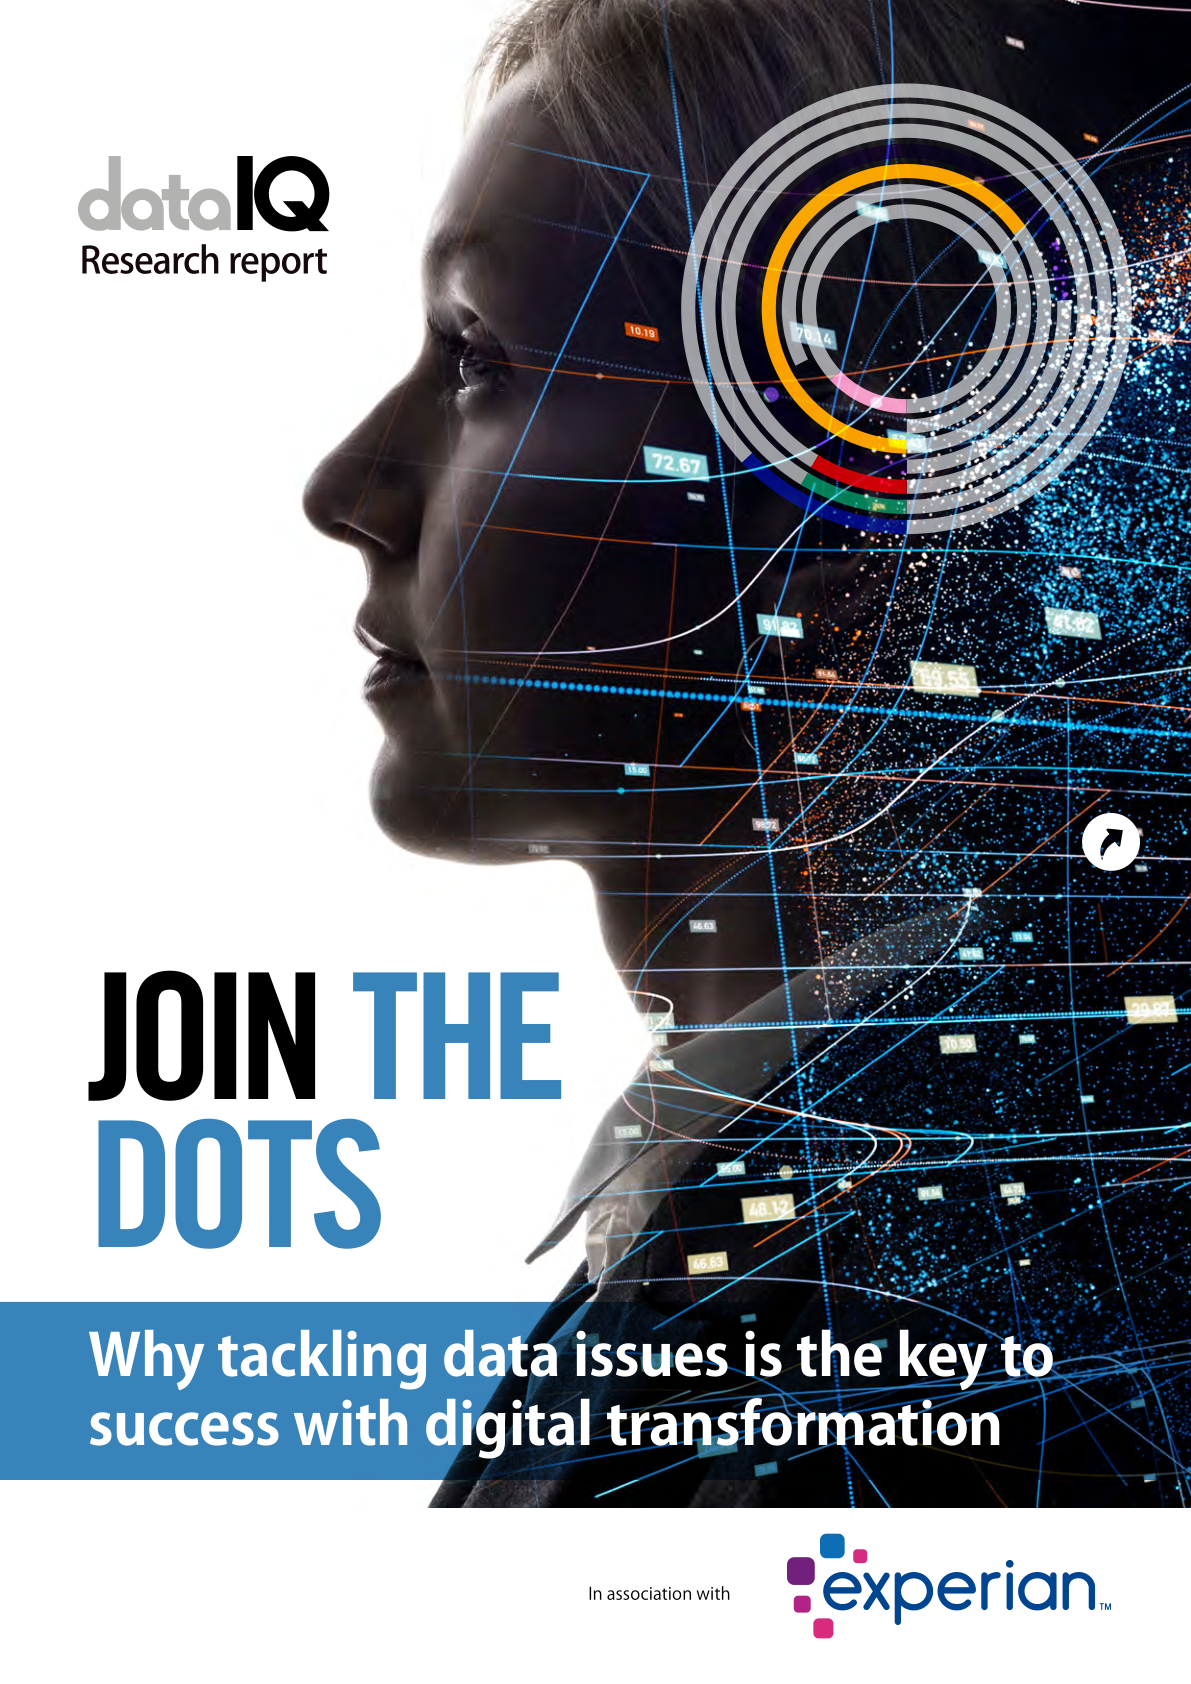 Join the dots: Why tackling data issues is key to digital transformation